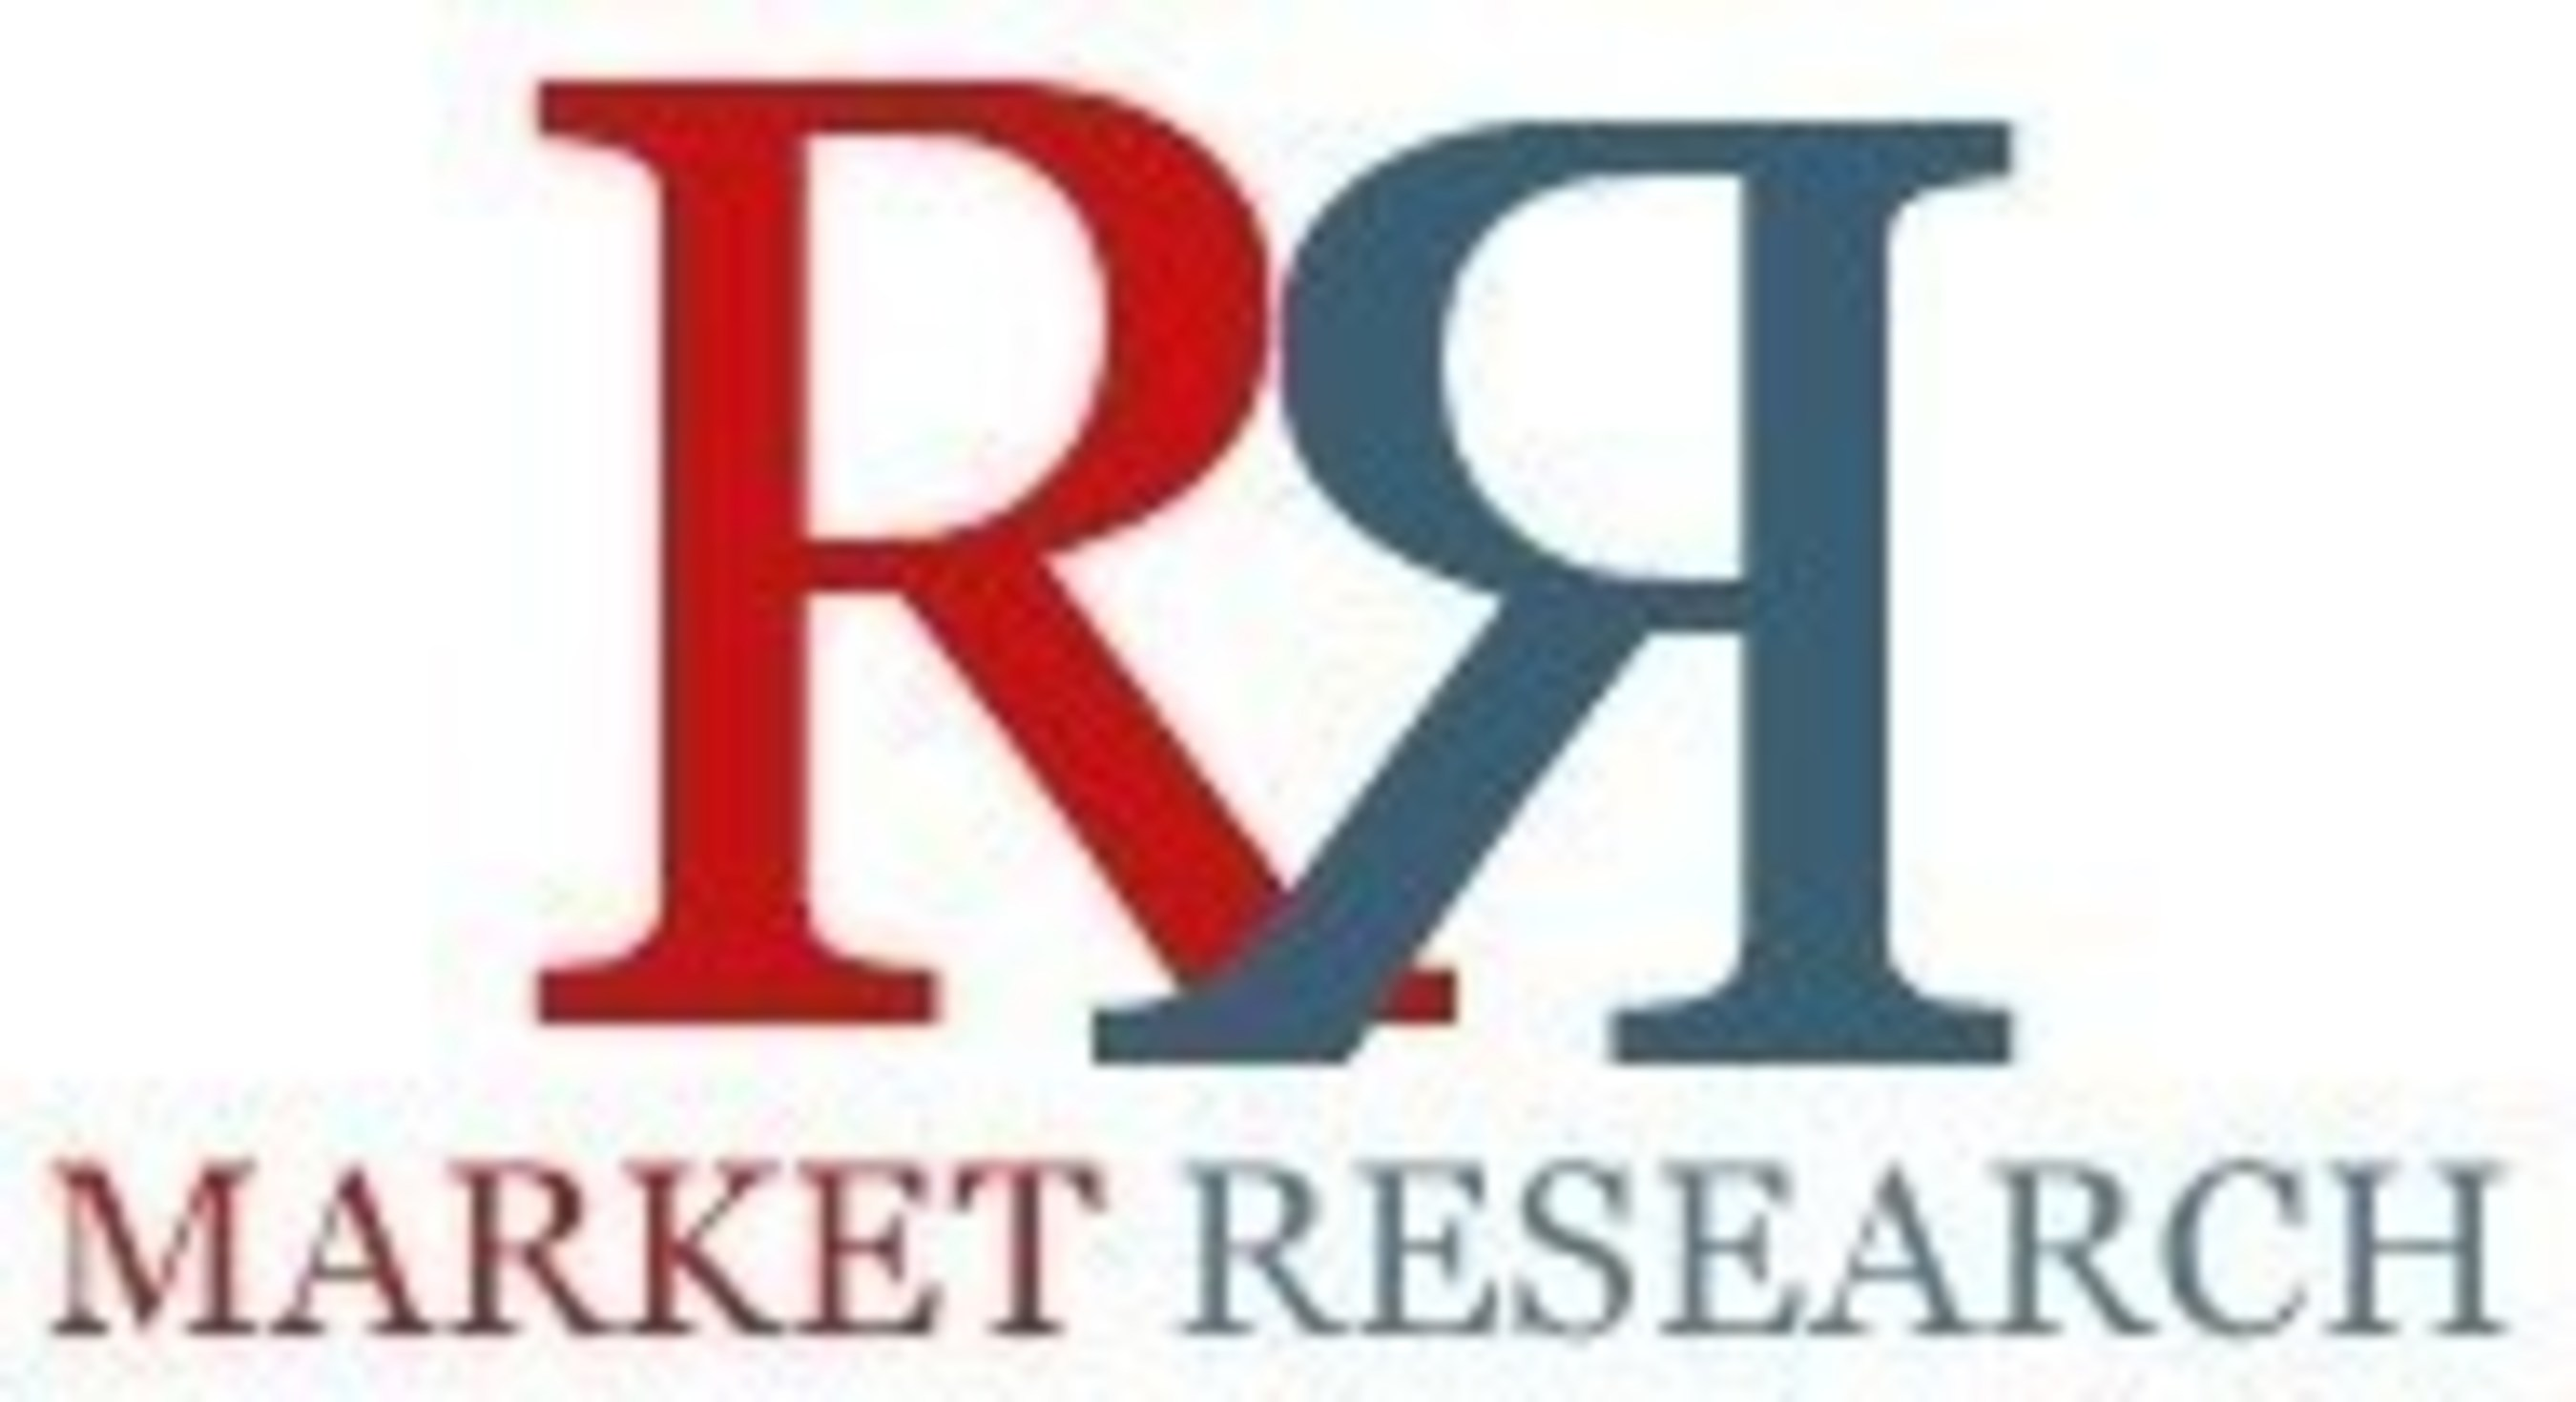 Attenuator Market Trends, Development, Analysis and 2019 Forecasts for Global and Chinese Regions